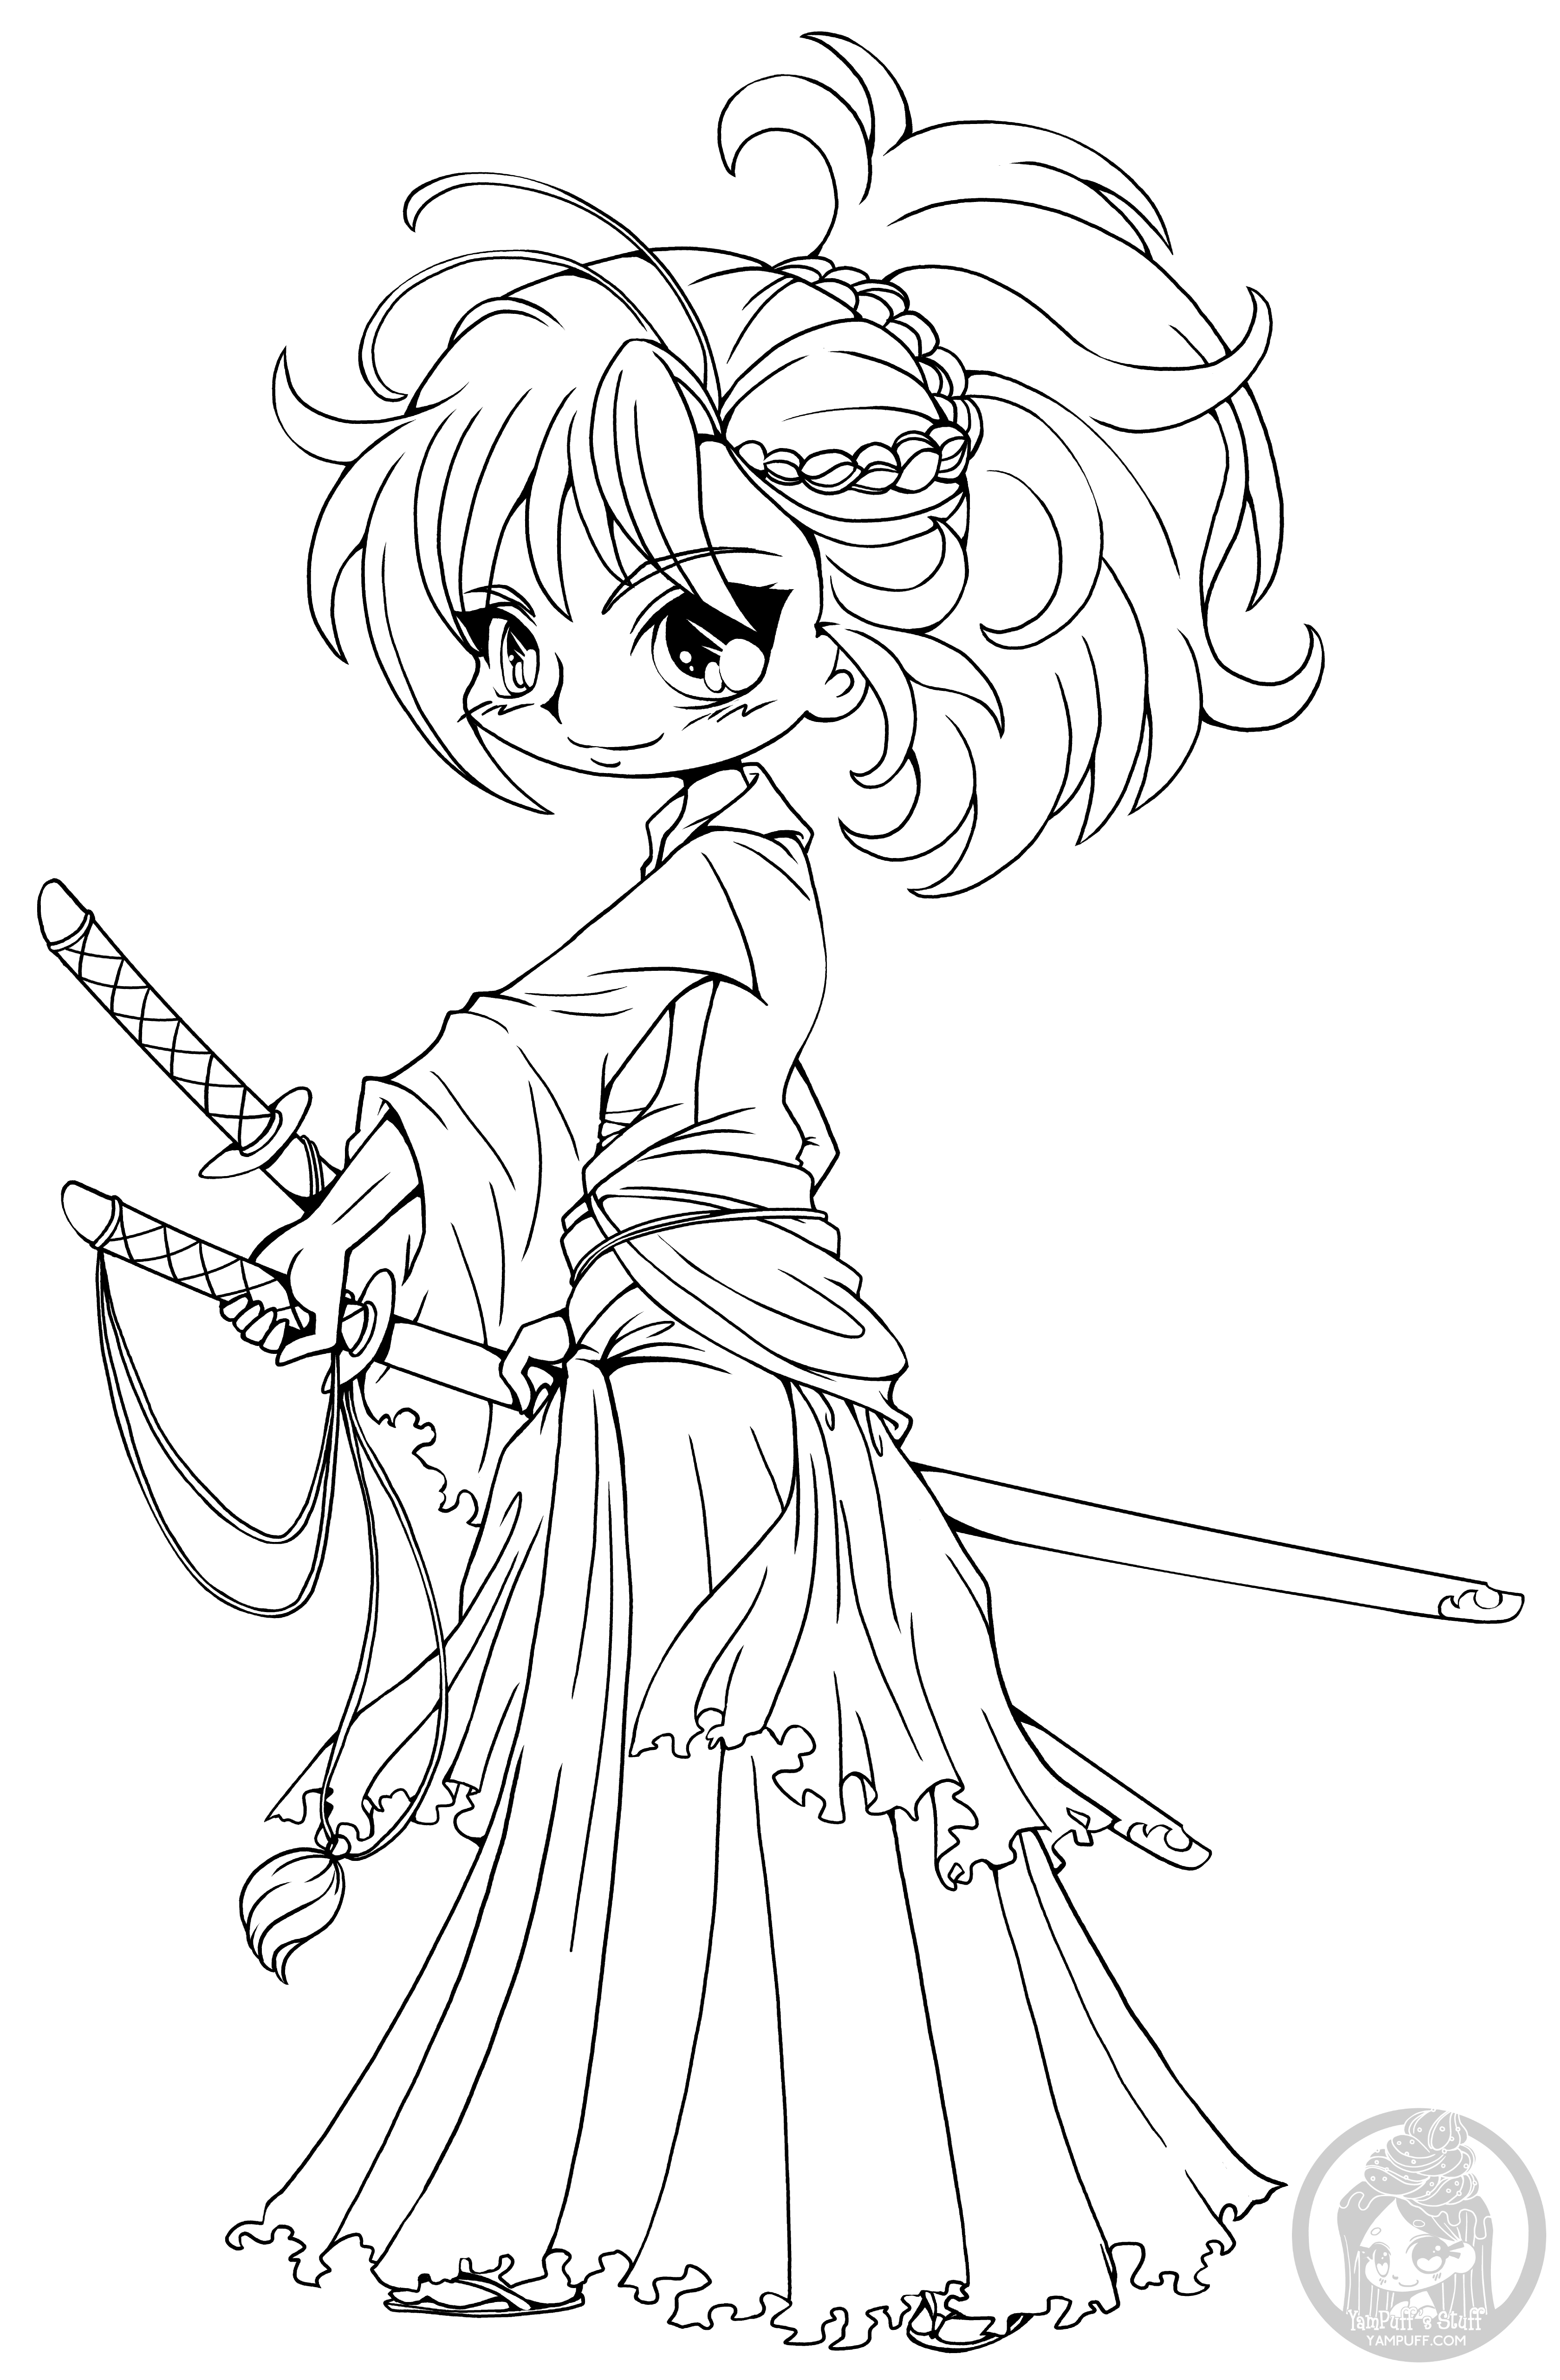 chibi girl coloring pages anime chibi princess coloring pages coloriage manga chibi coloring girl pages